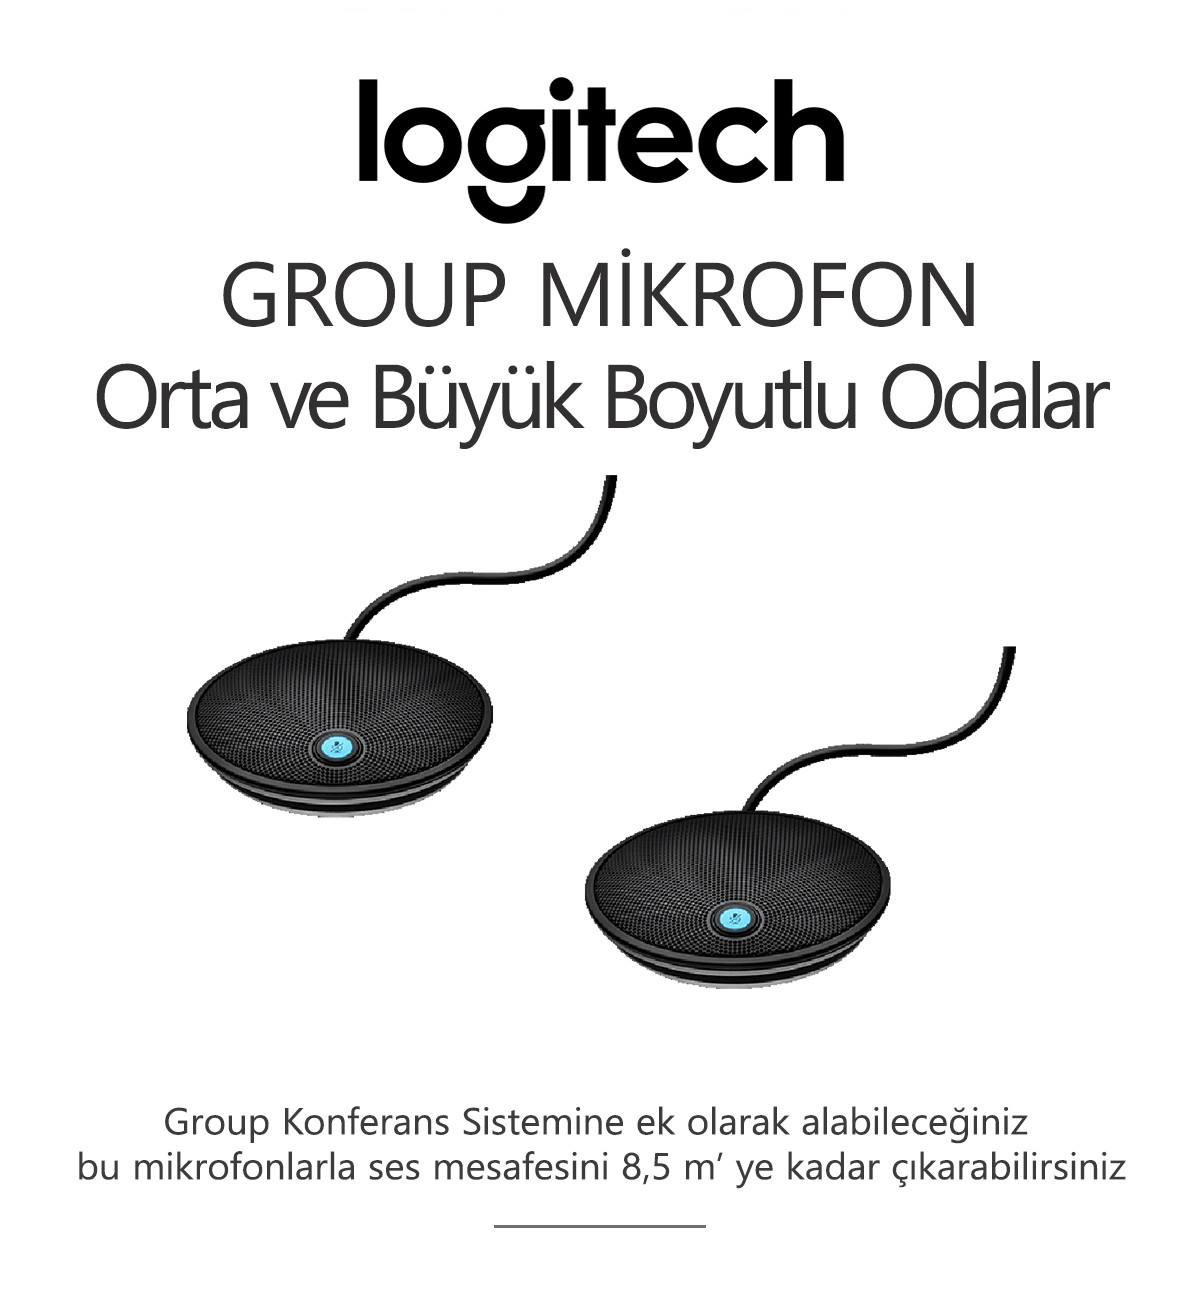 Logitech GROUP MİKROFON